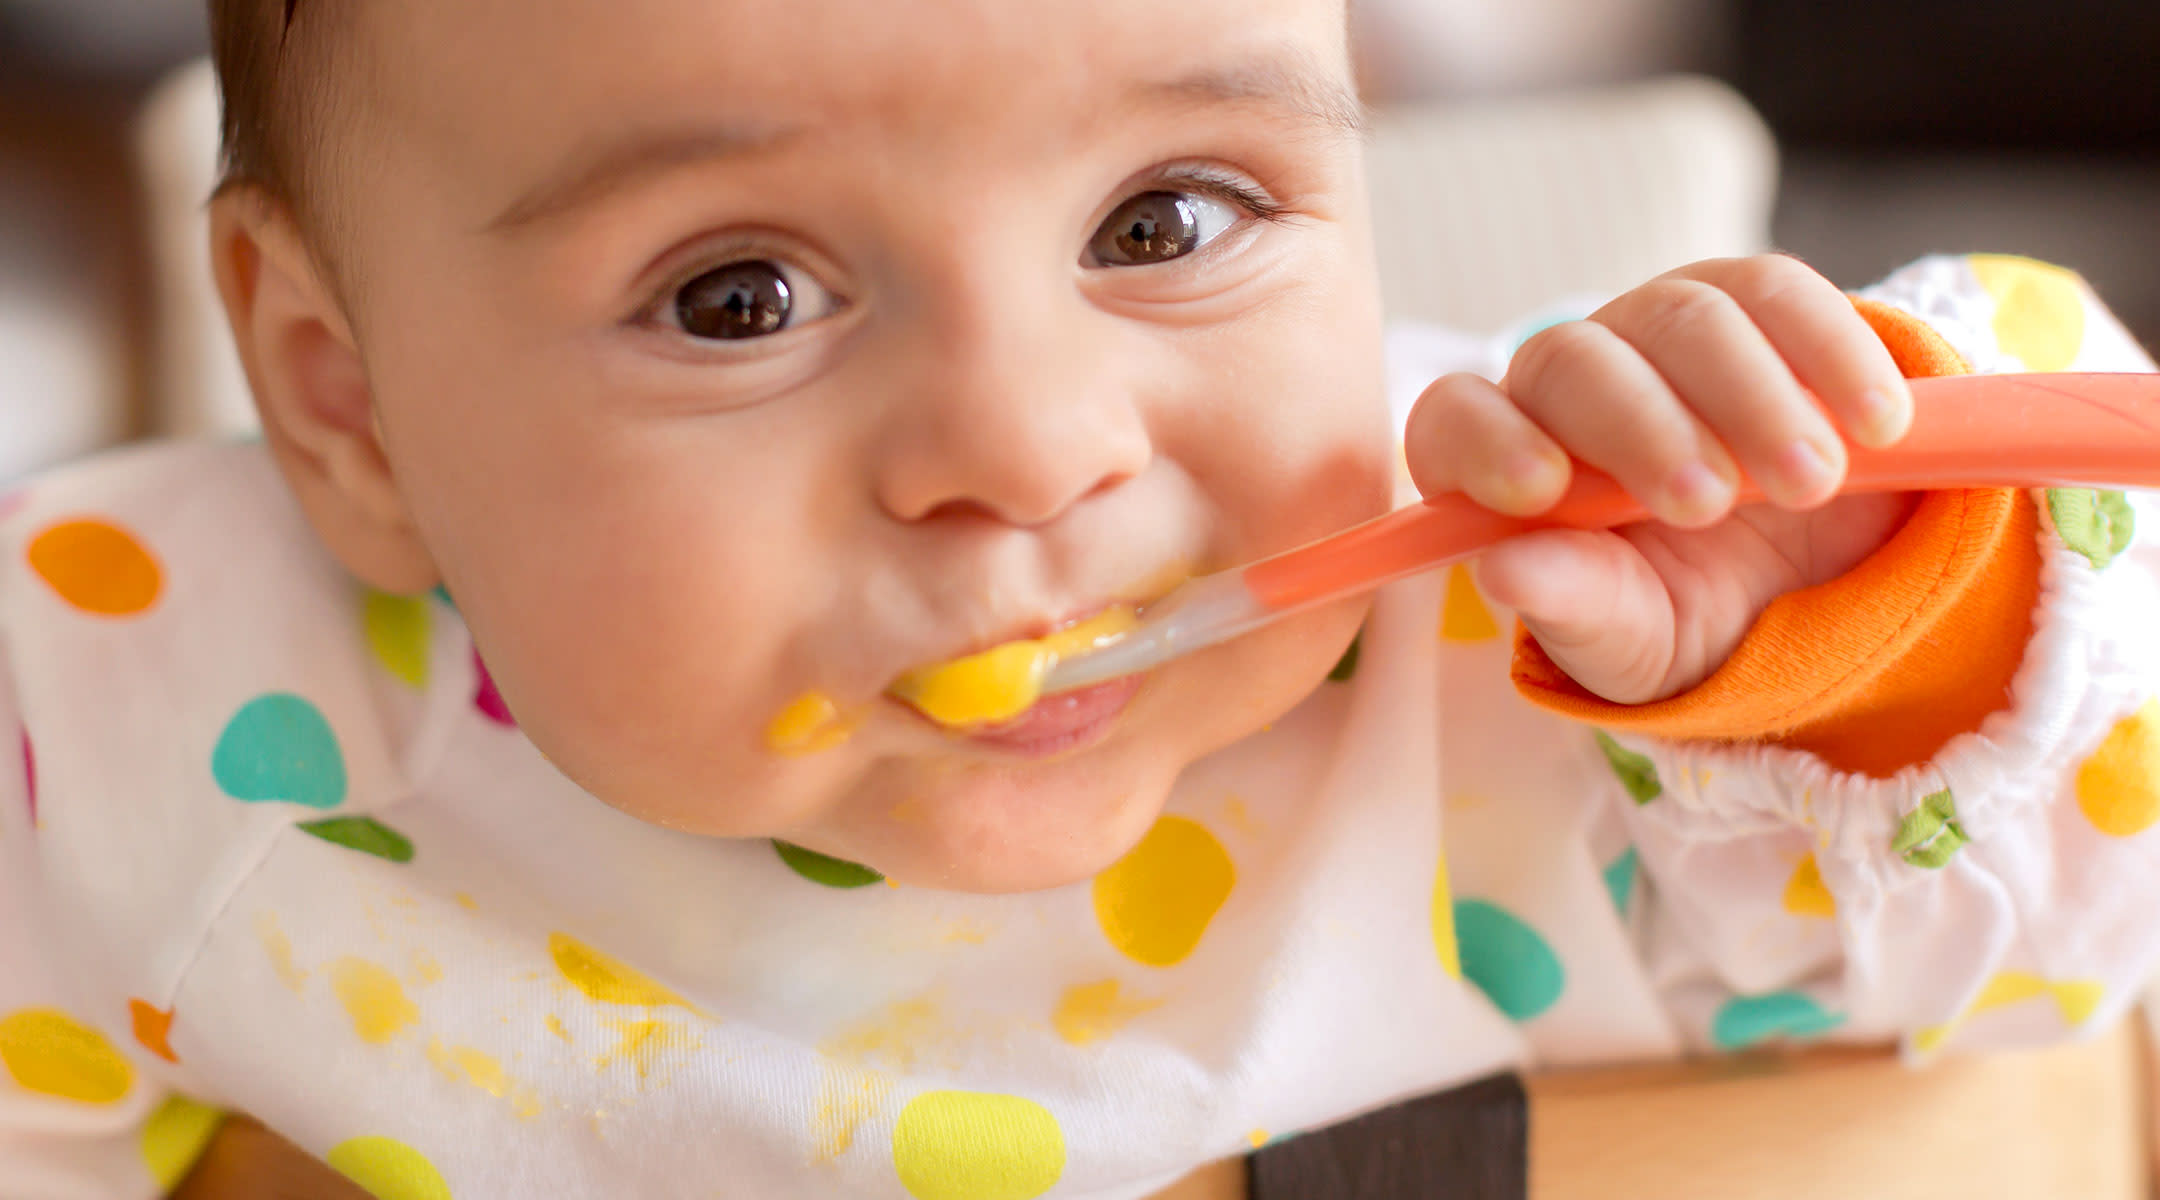 Smiling baby eating food.